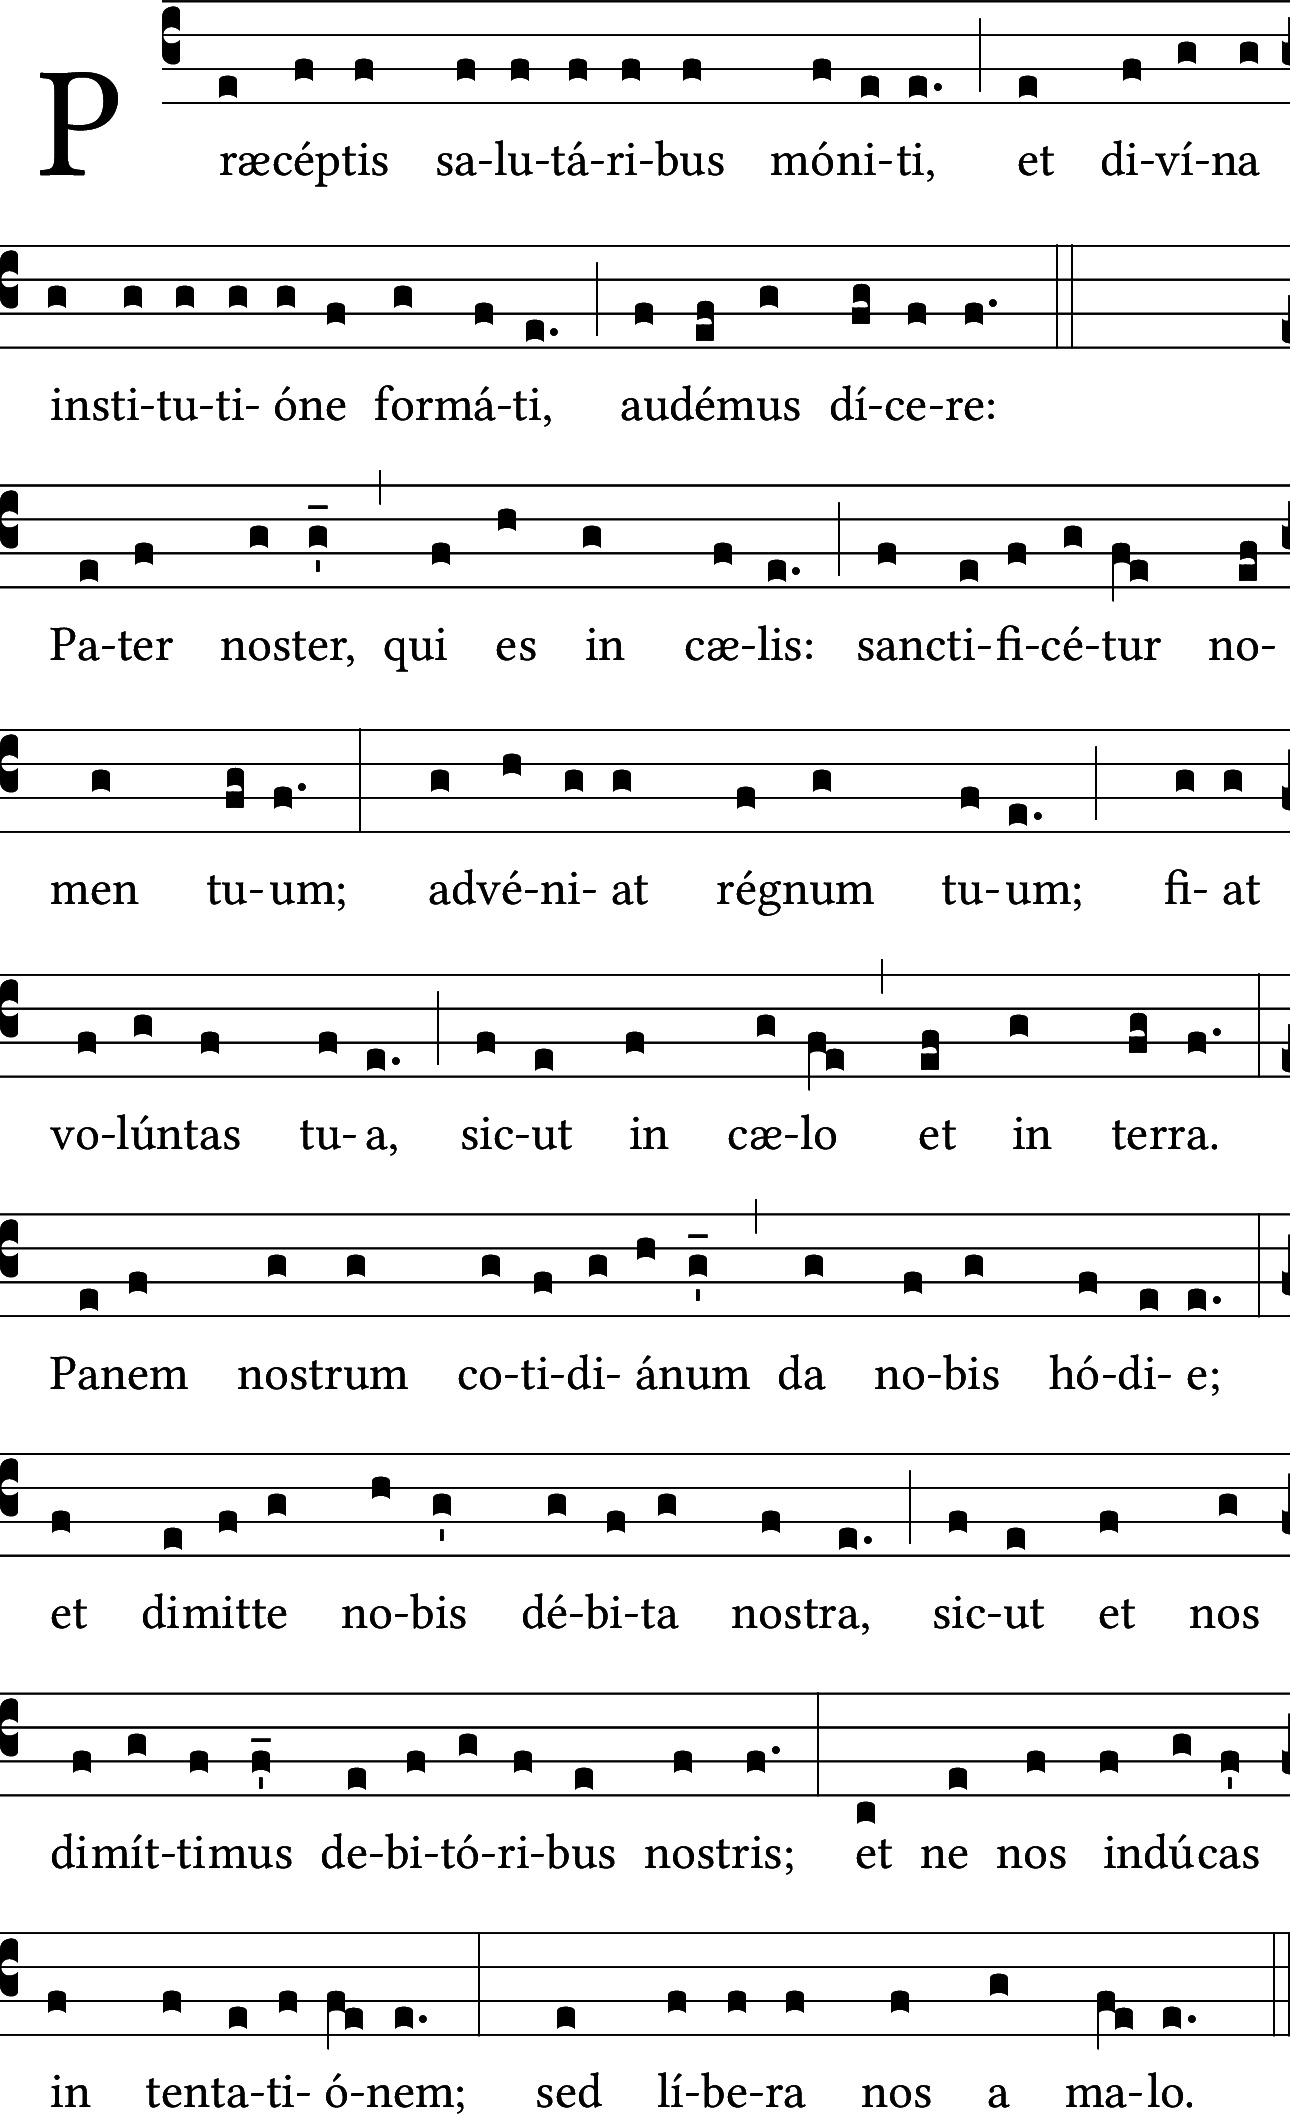 Pater noster...